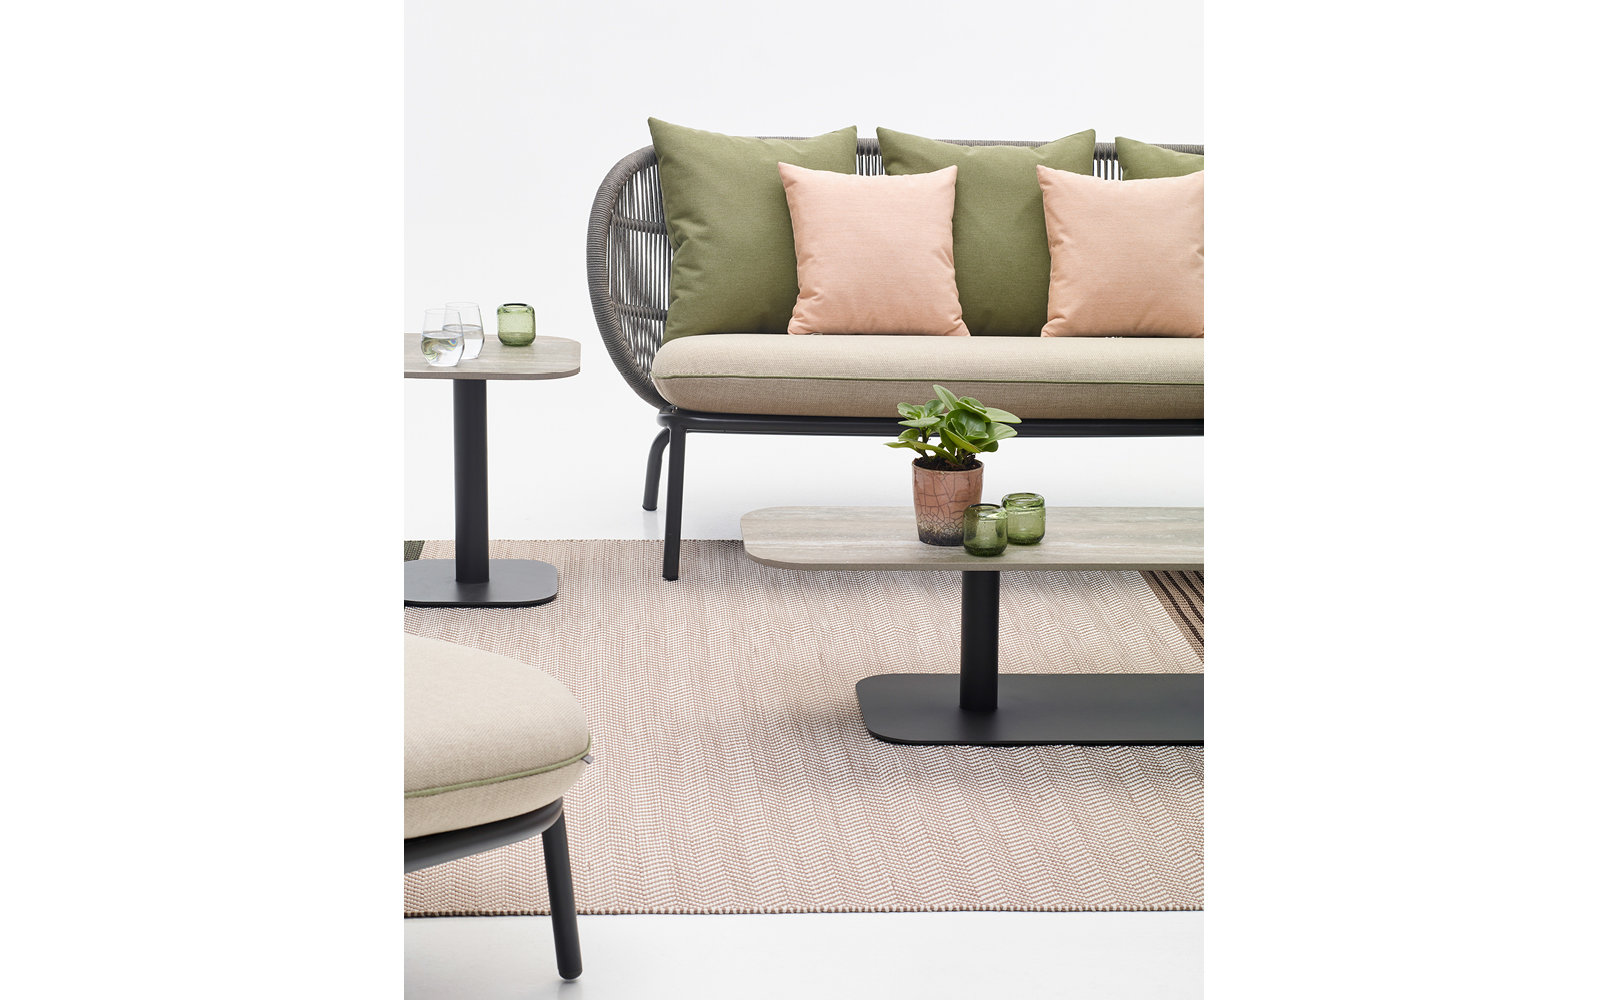 vincent-sheppard-kodo-coffee-table-lounge-sofa